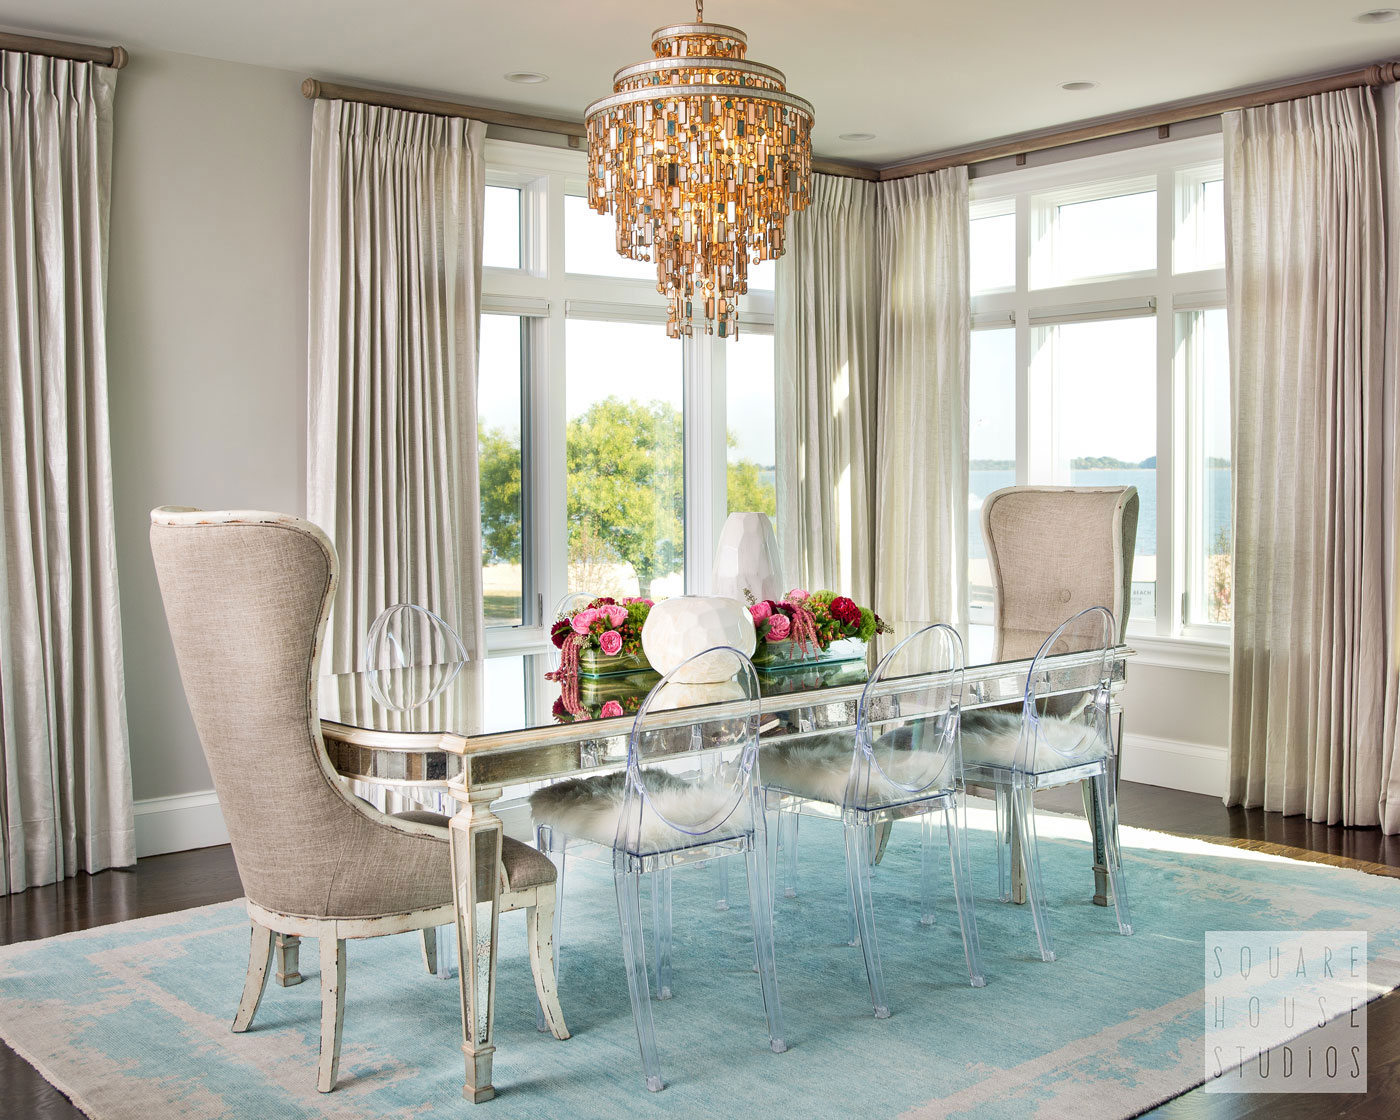 squarehousestudios-dining-room-and-windows-wide.jpg